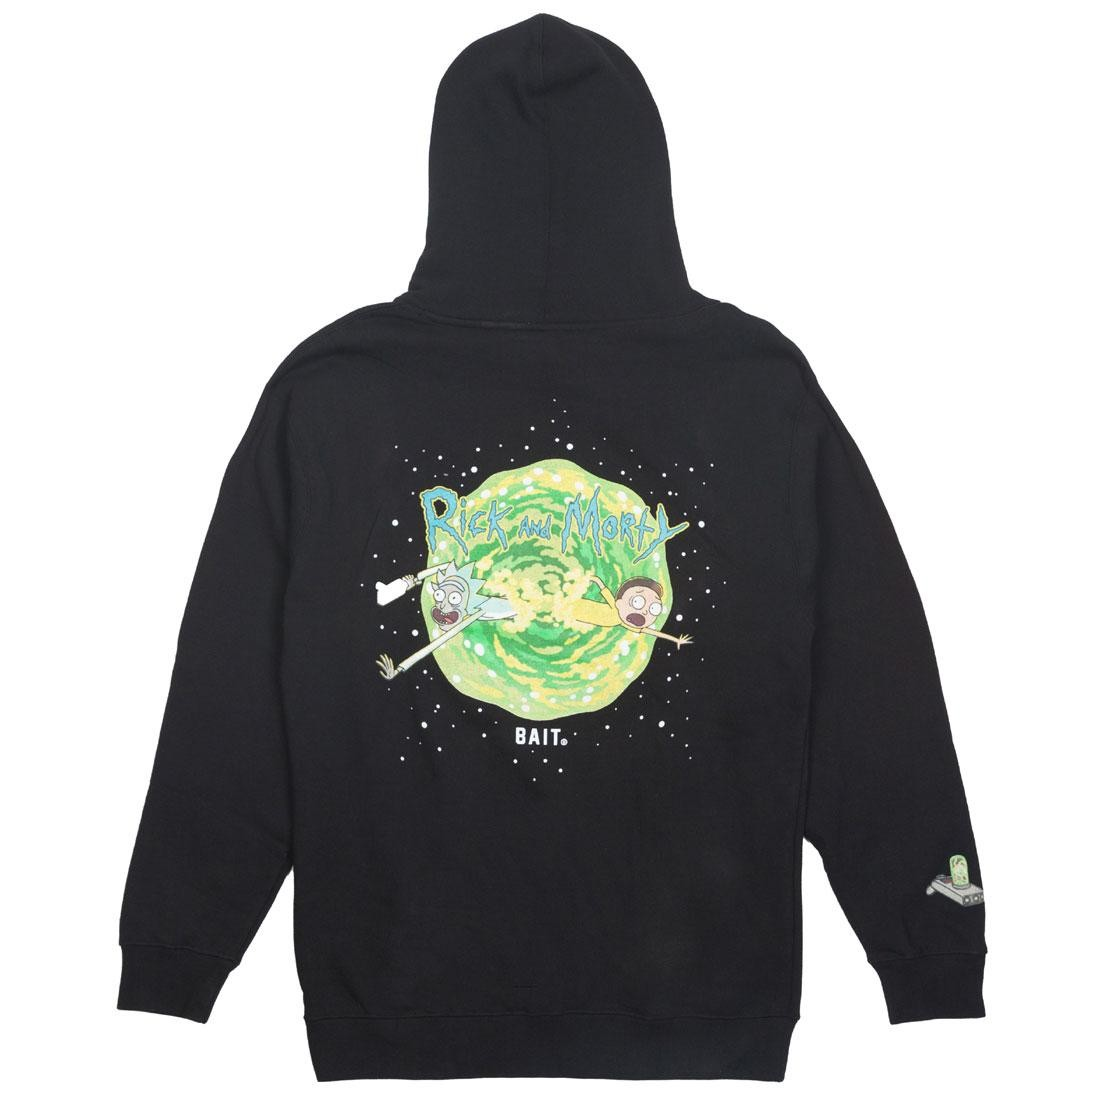 BAIT x Rick and Morty Men Portal Glow In The Dark Hoody (black)